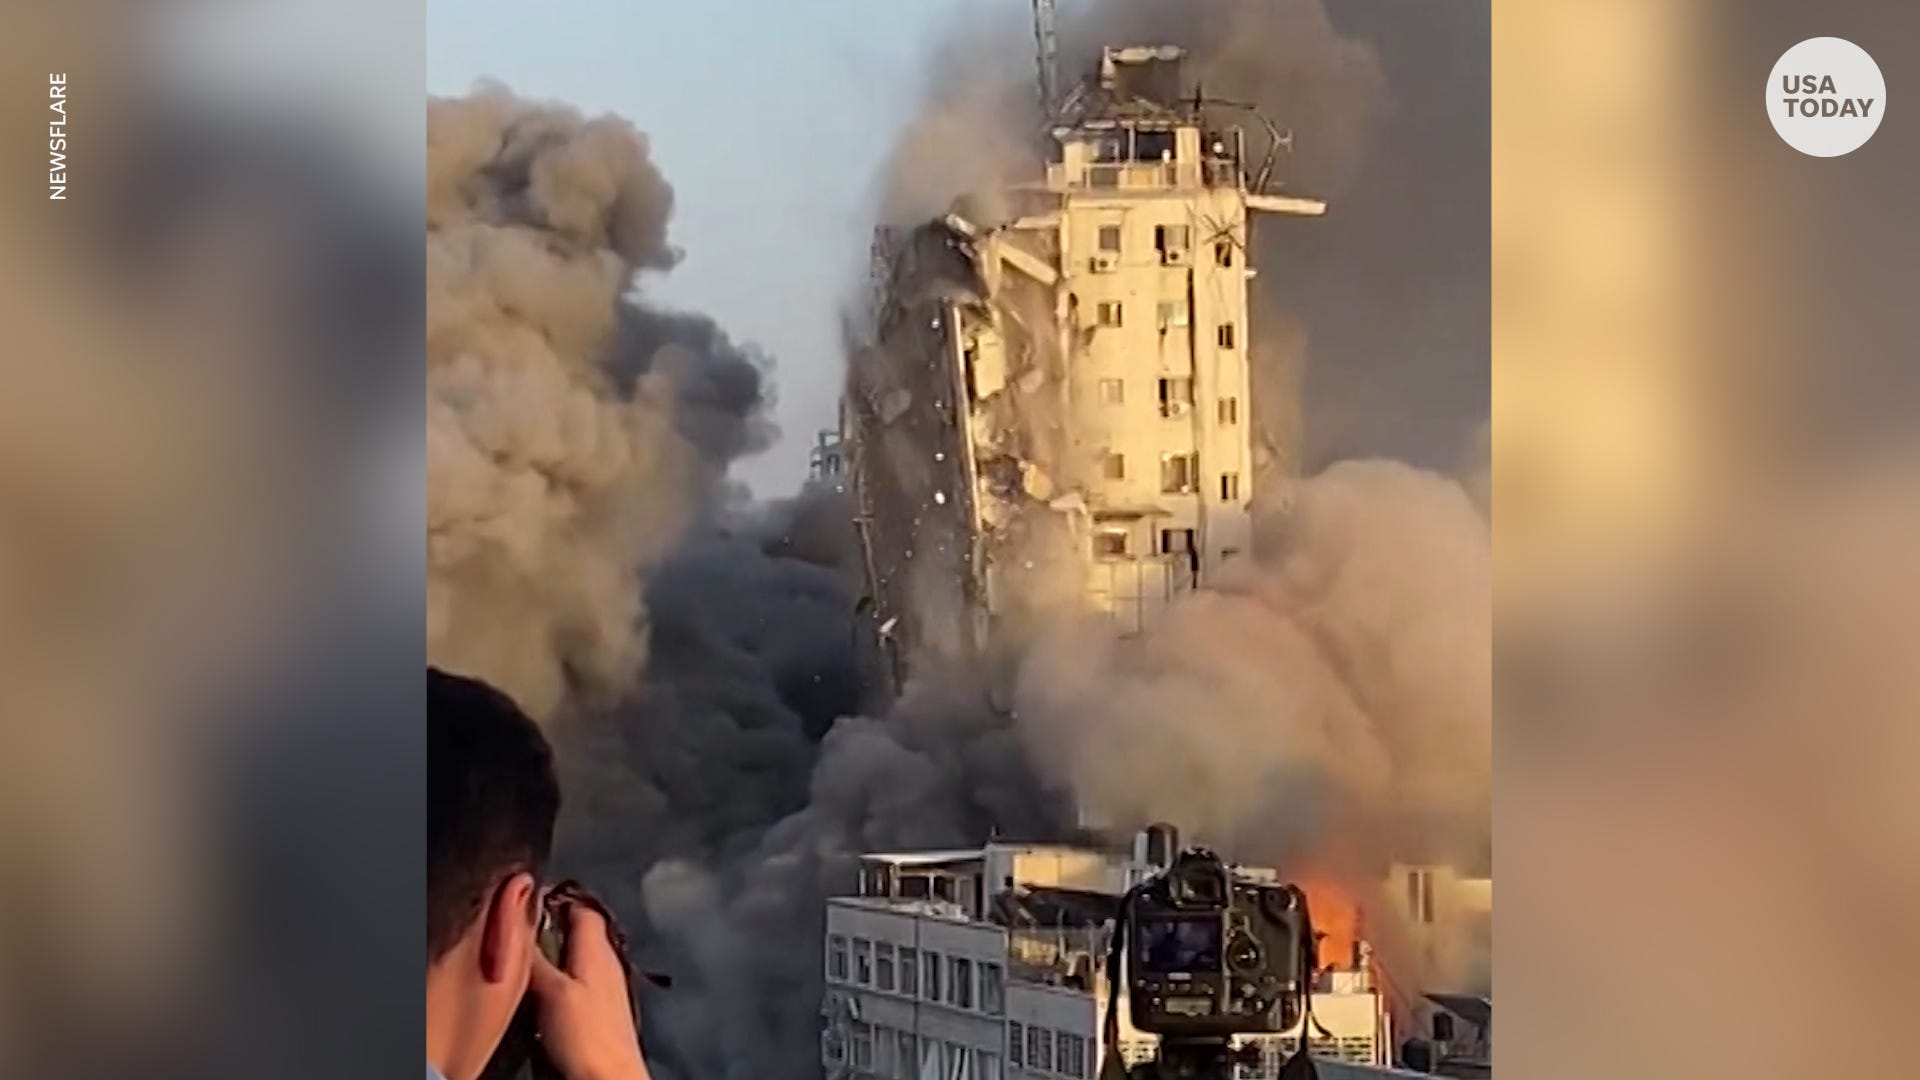 Fearless photographer captures moment missile attack takes down Gaza tower